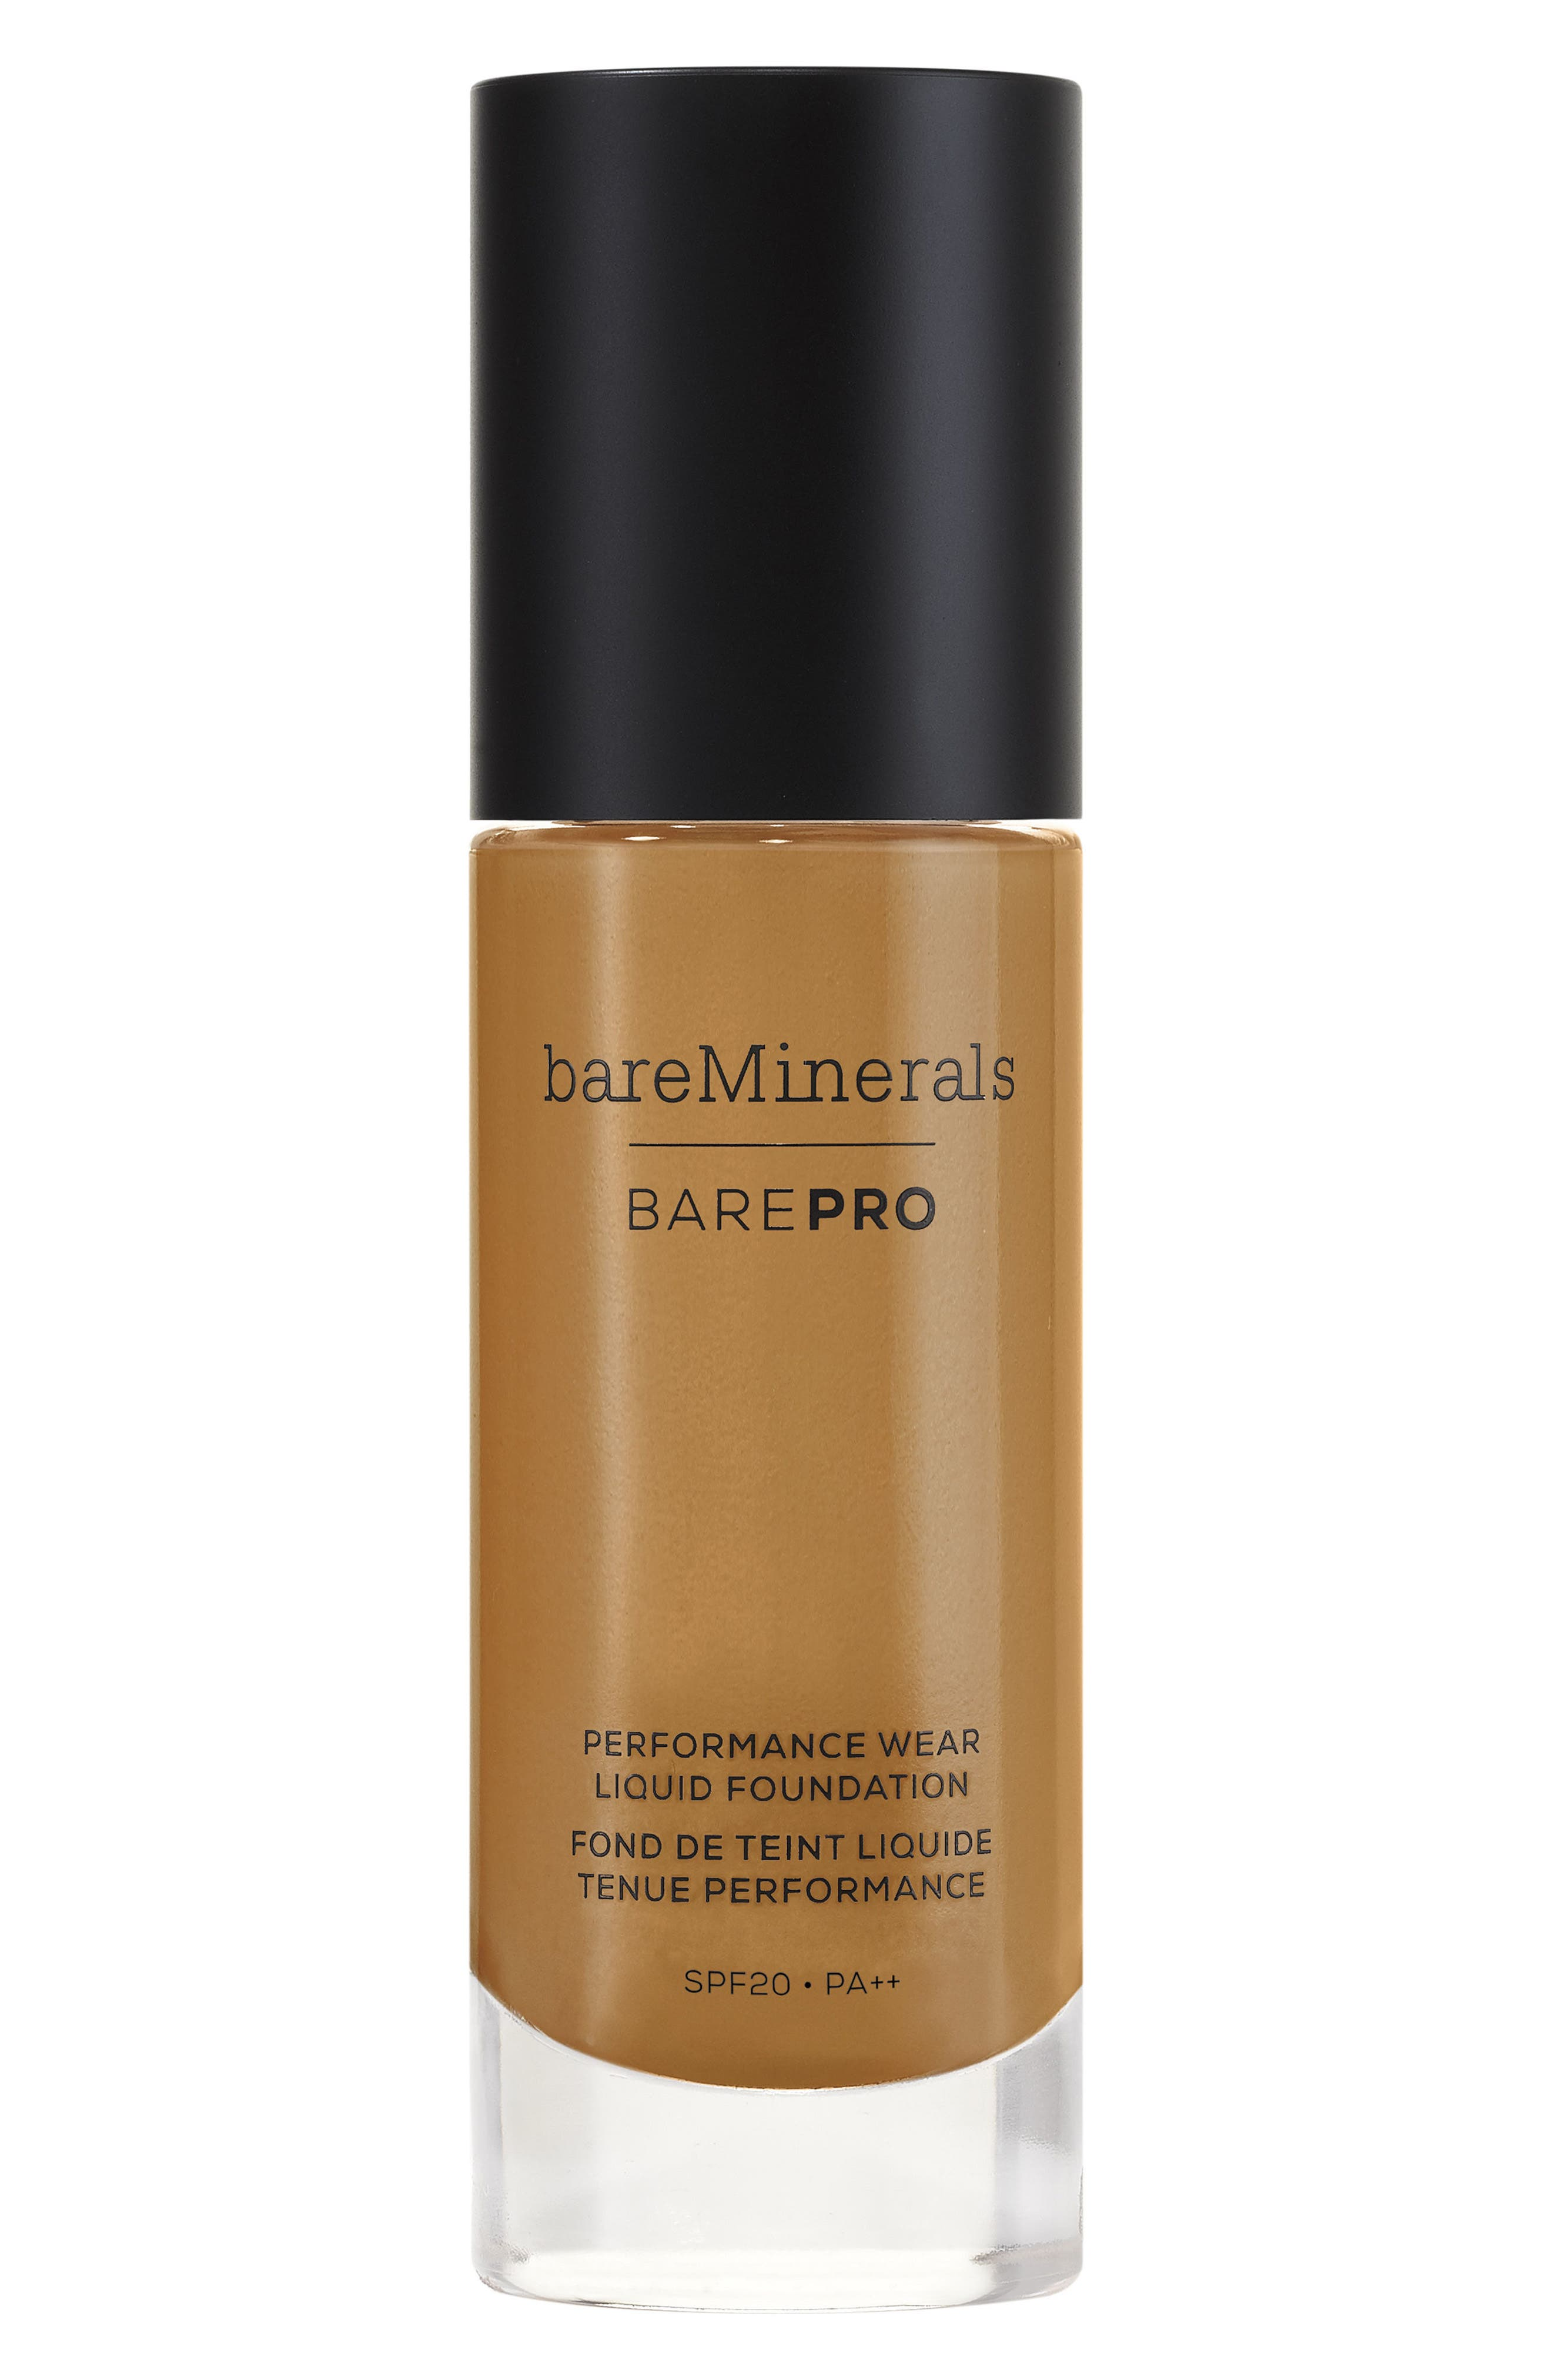 Bare Pro® Performance Wear Liquid Foundation by Bareminerals®